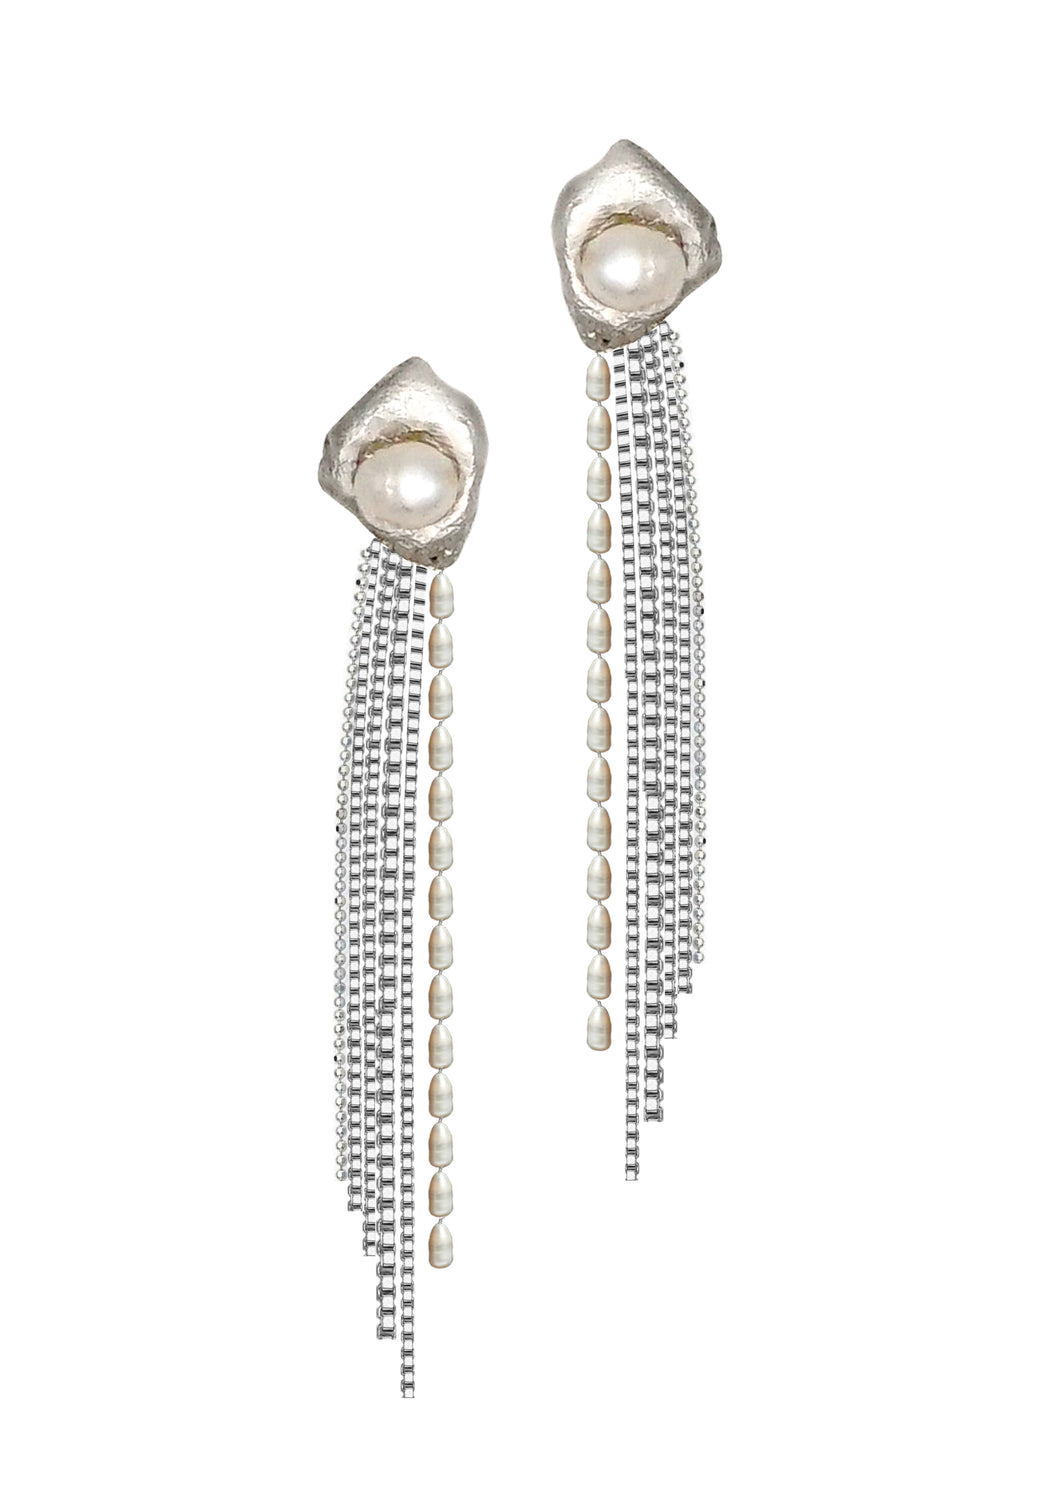 MILANOVA STUDIO x Affair - Earrings